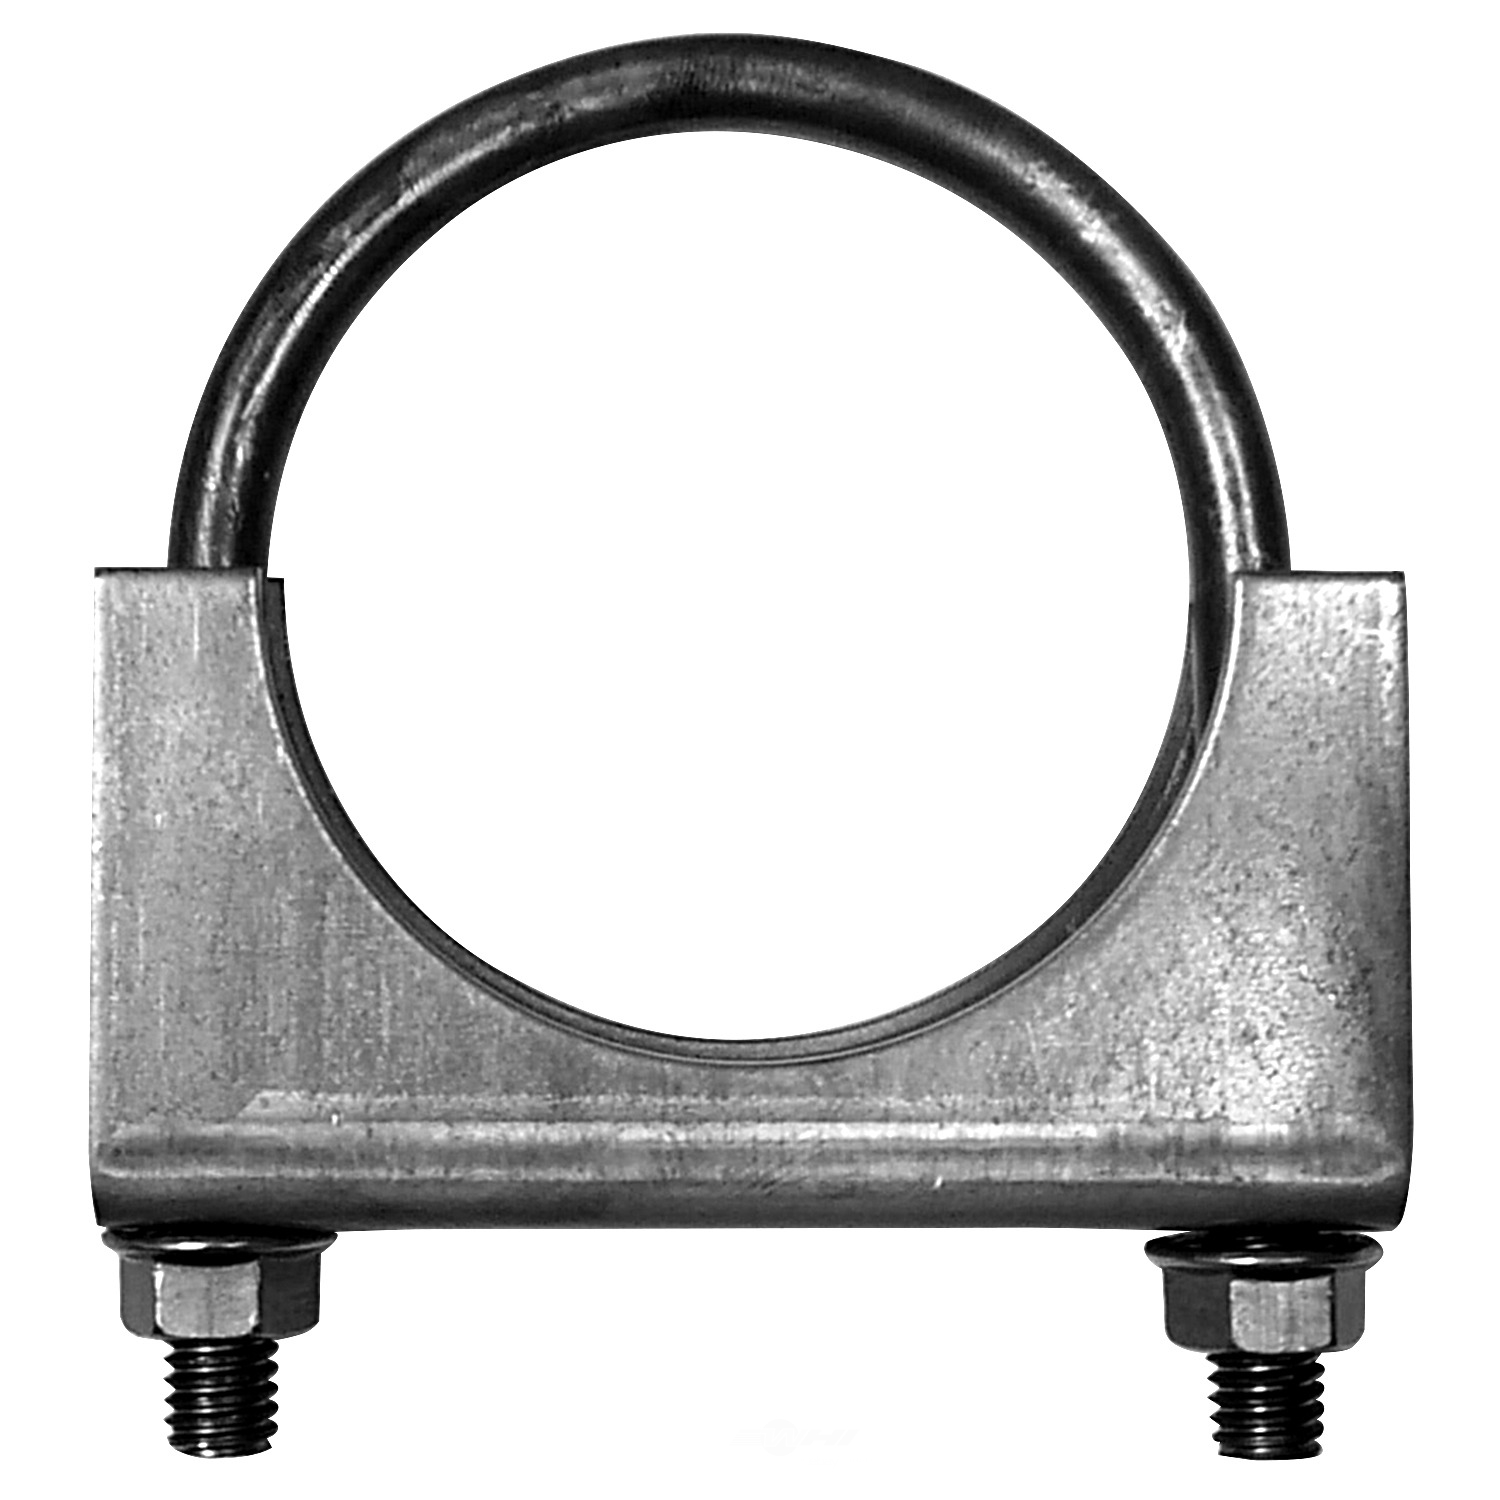 AP EXHAUST W/FEDERAL CONVERTER - Exhaust Clamp - APF H300